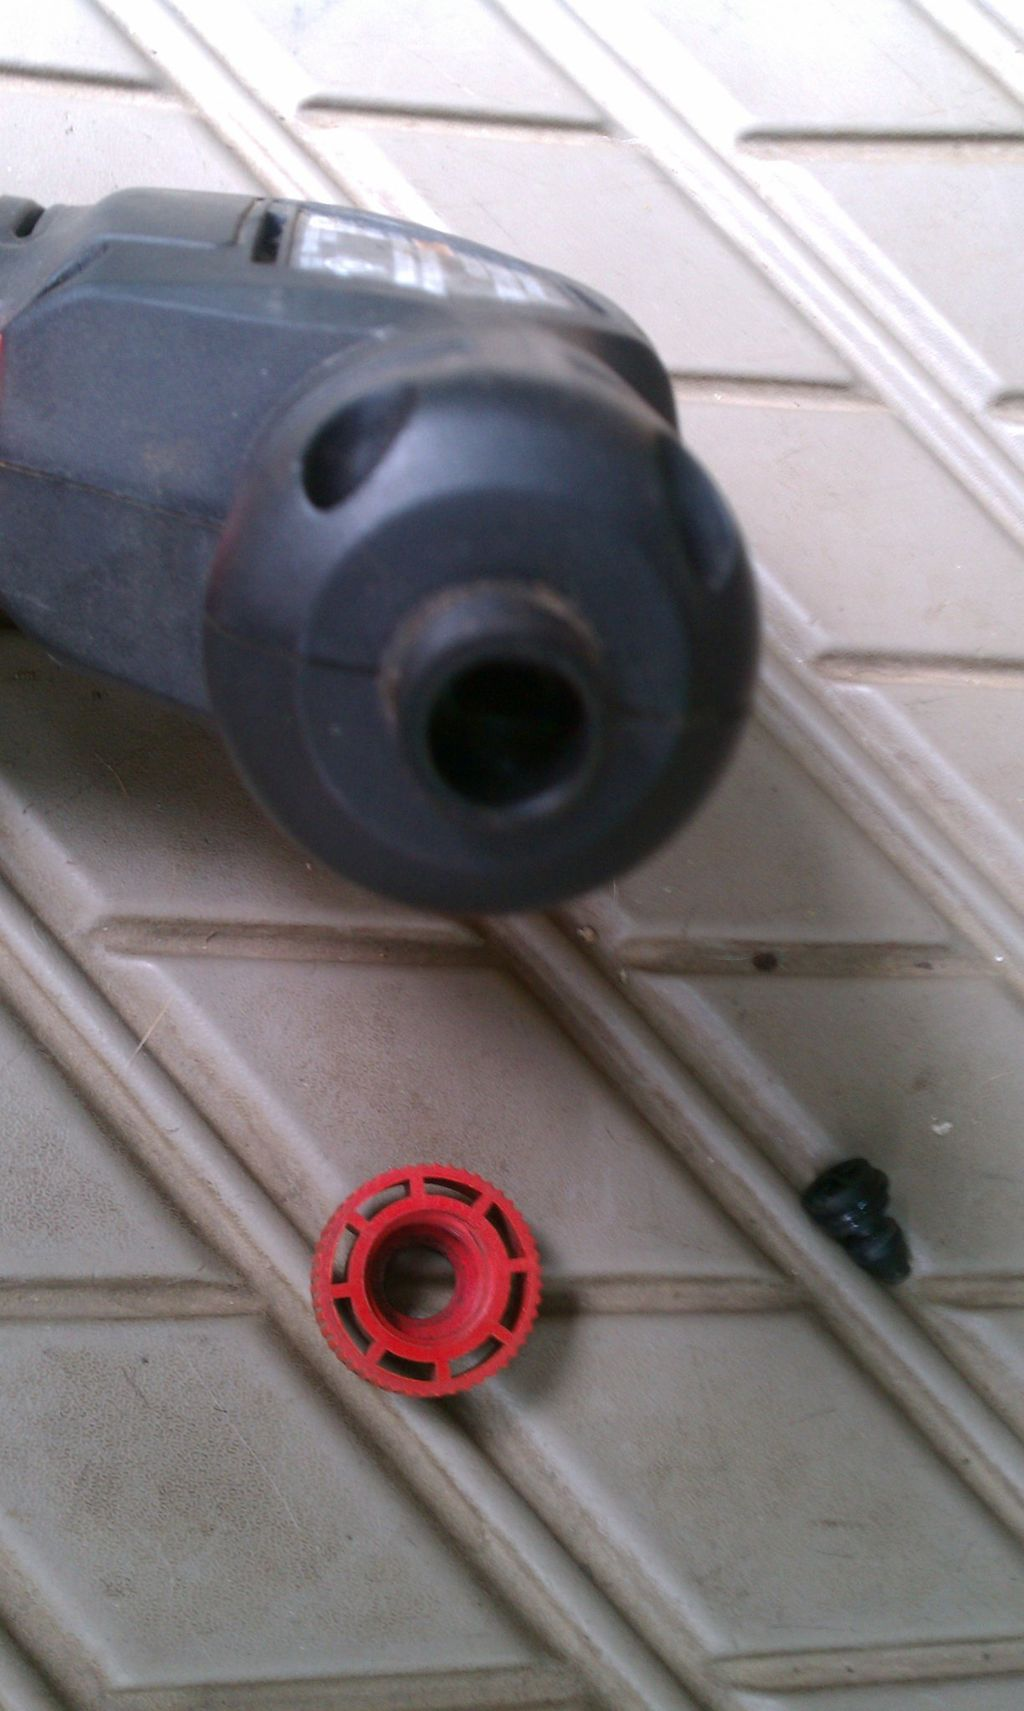 step-three-remove-the-red-knob-from-the-inflator-and-remove-the-chuck-that-is-in-there